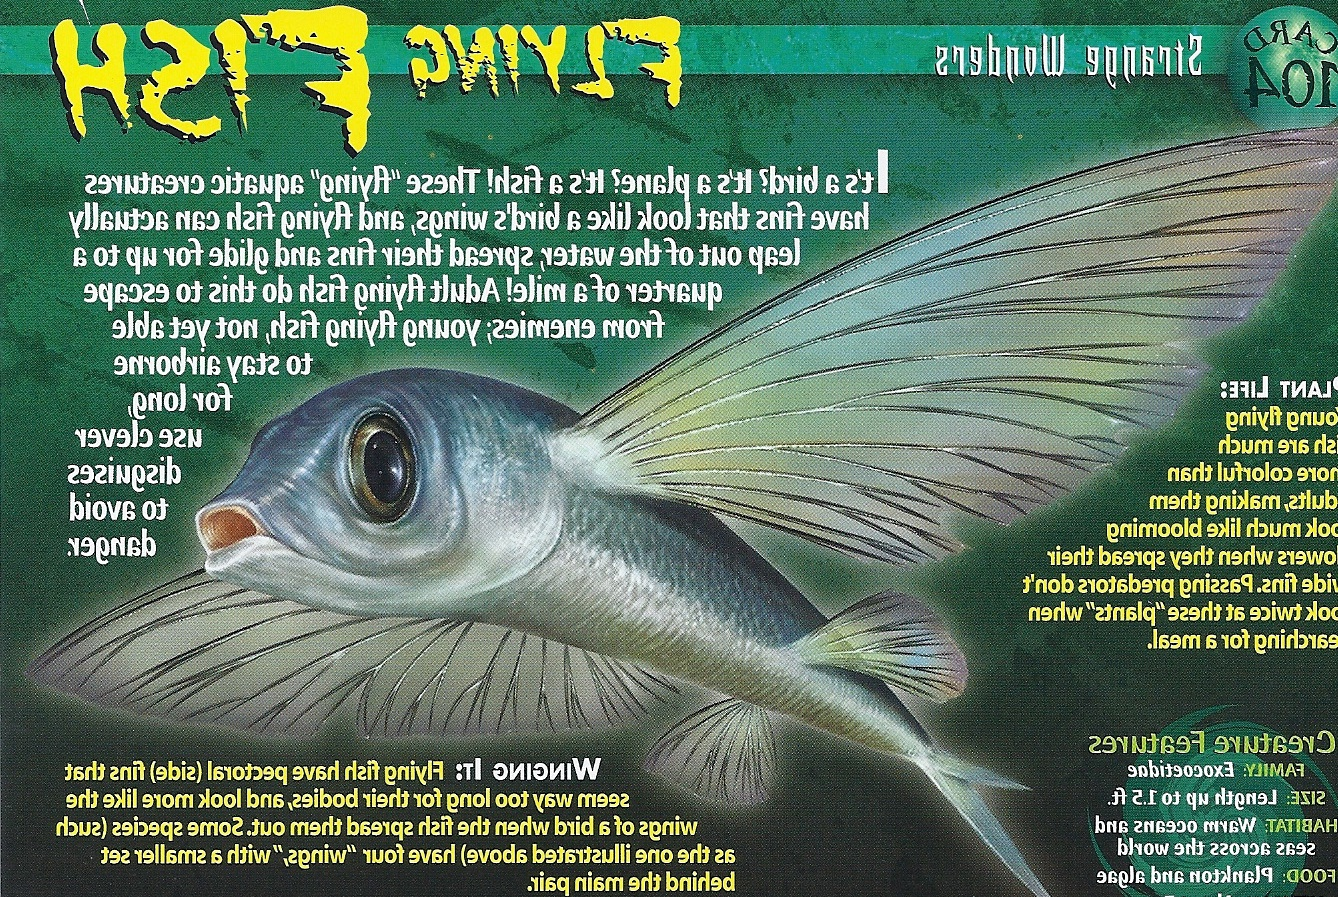 Flying Fish - Wierd N'wild Creatures Wiki